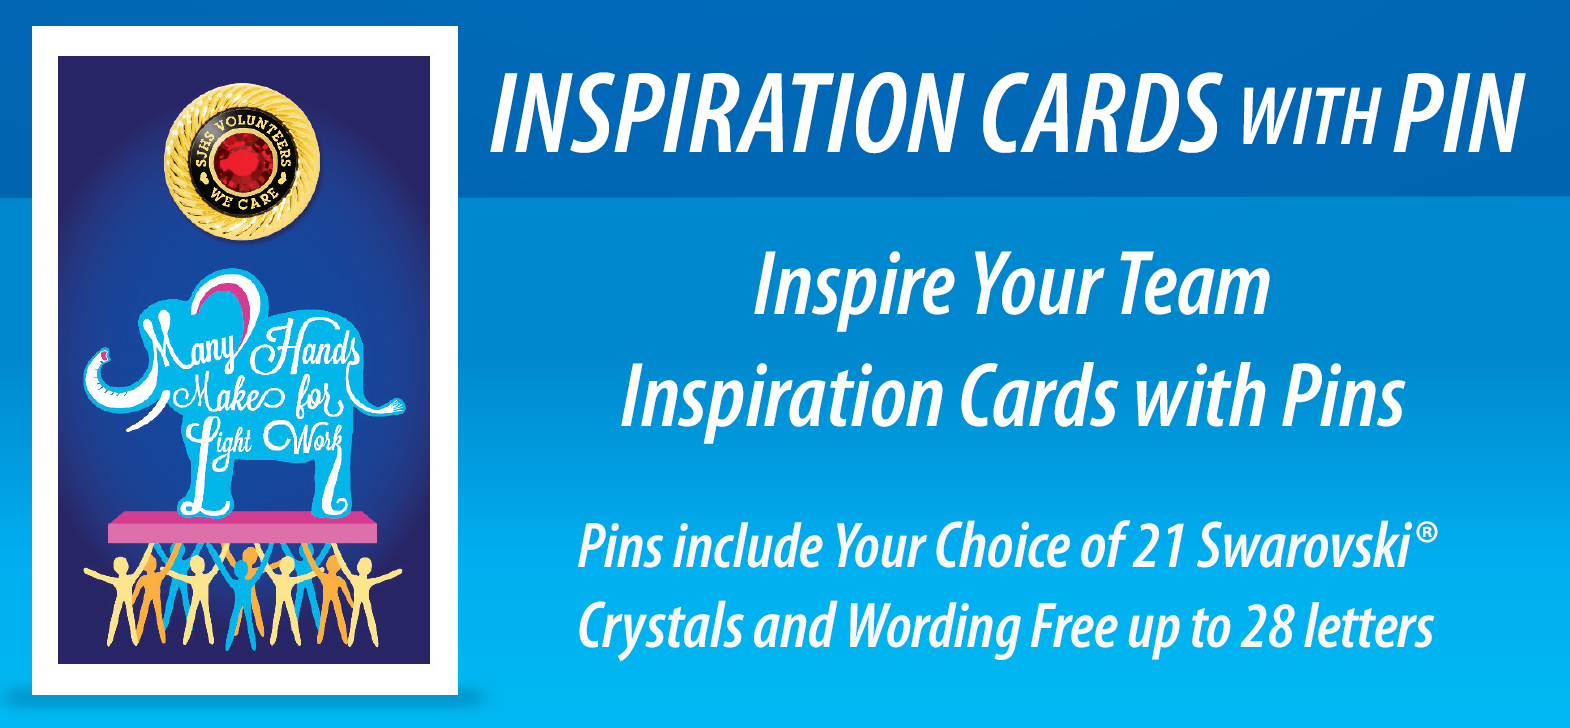 Inspiration Pins and Cards. Give Customized Inspiration Pins and Cards.